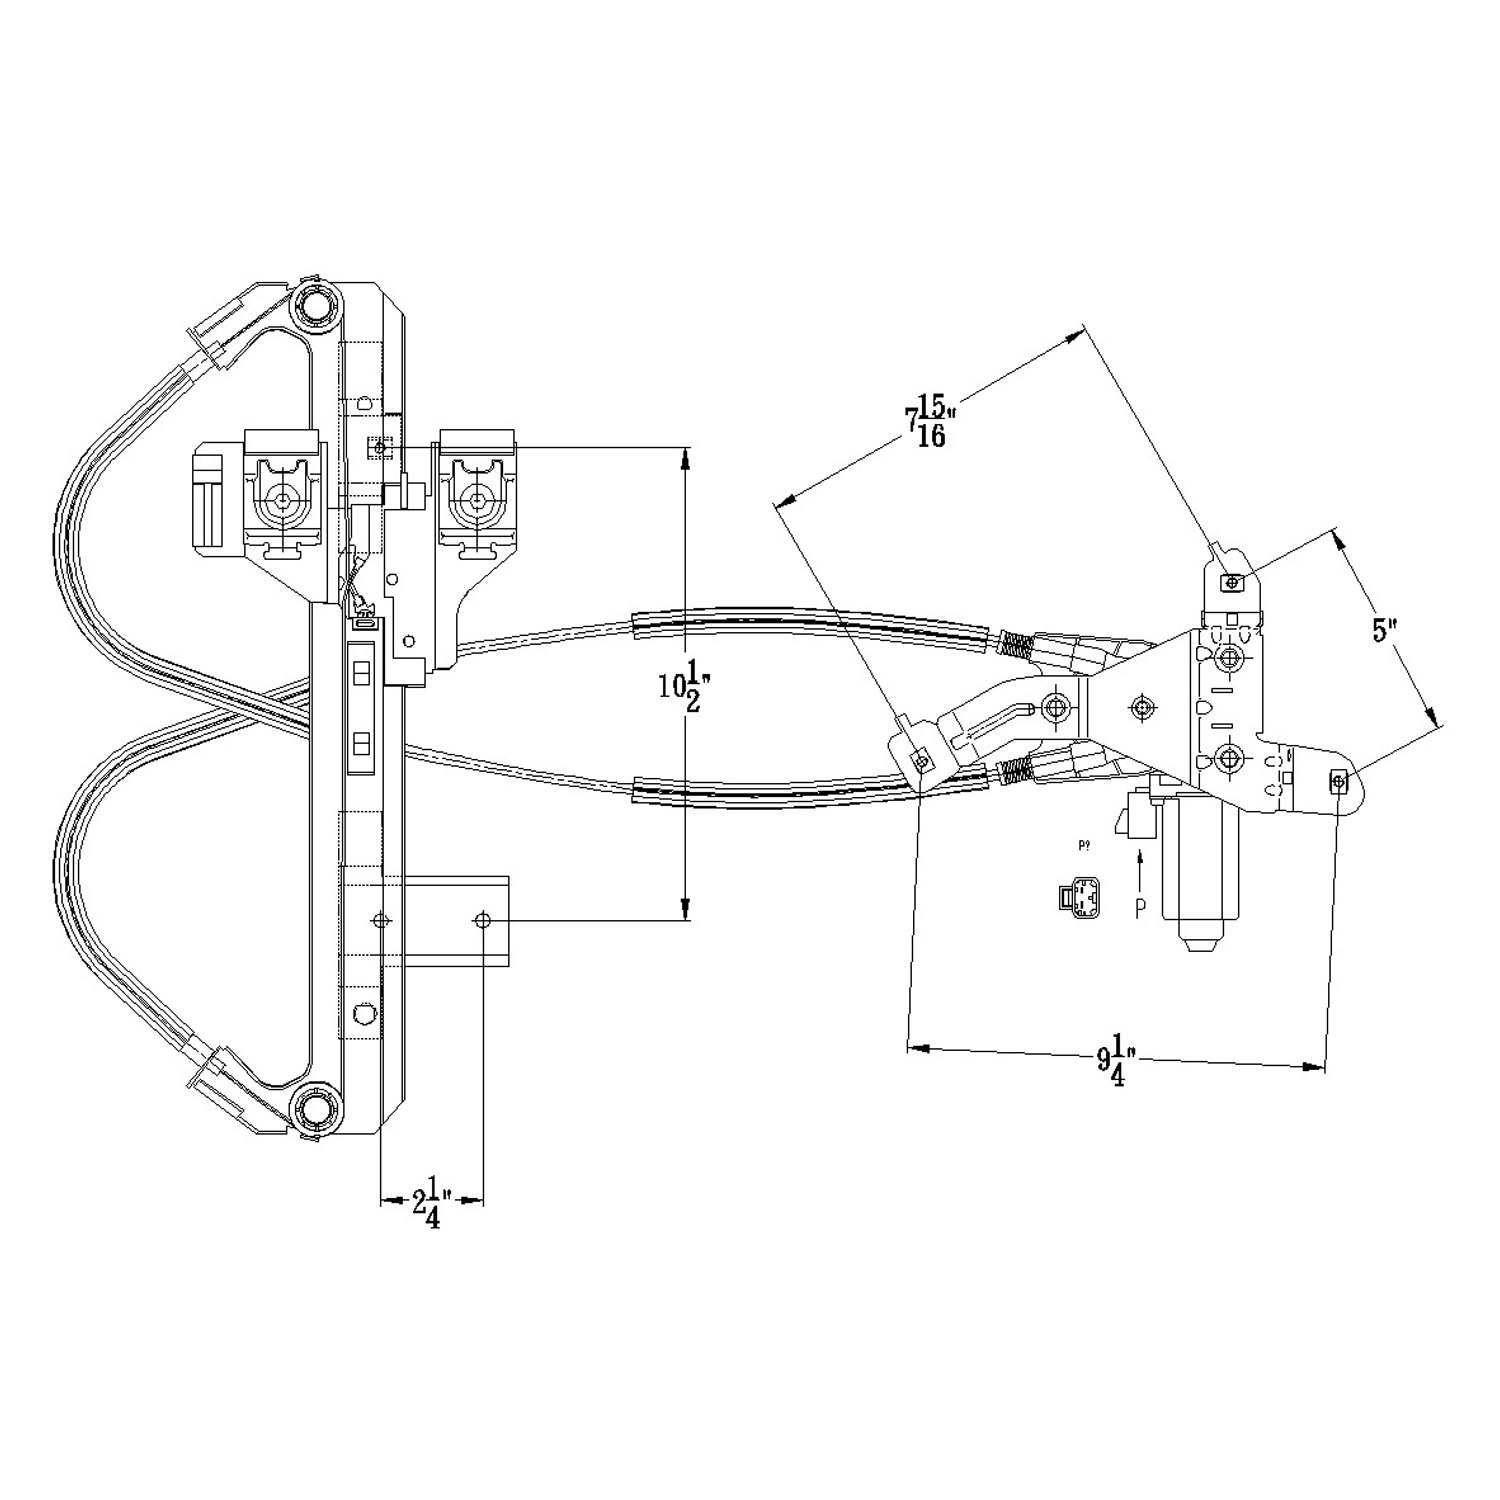 Power Window Cable Diagram Wiring Diagram Schemes